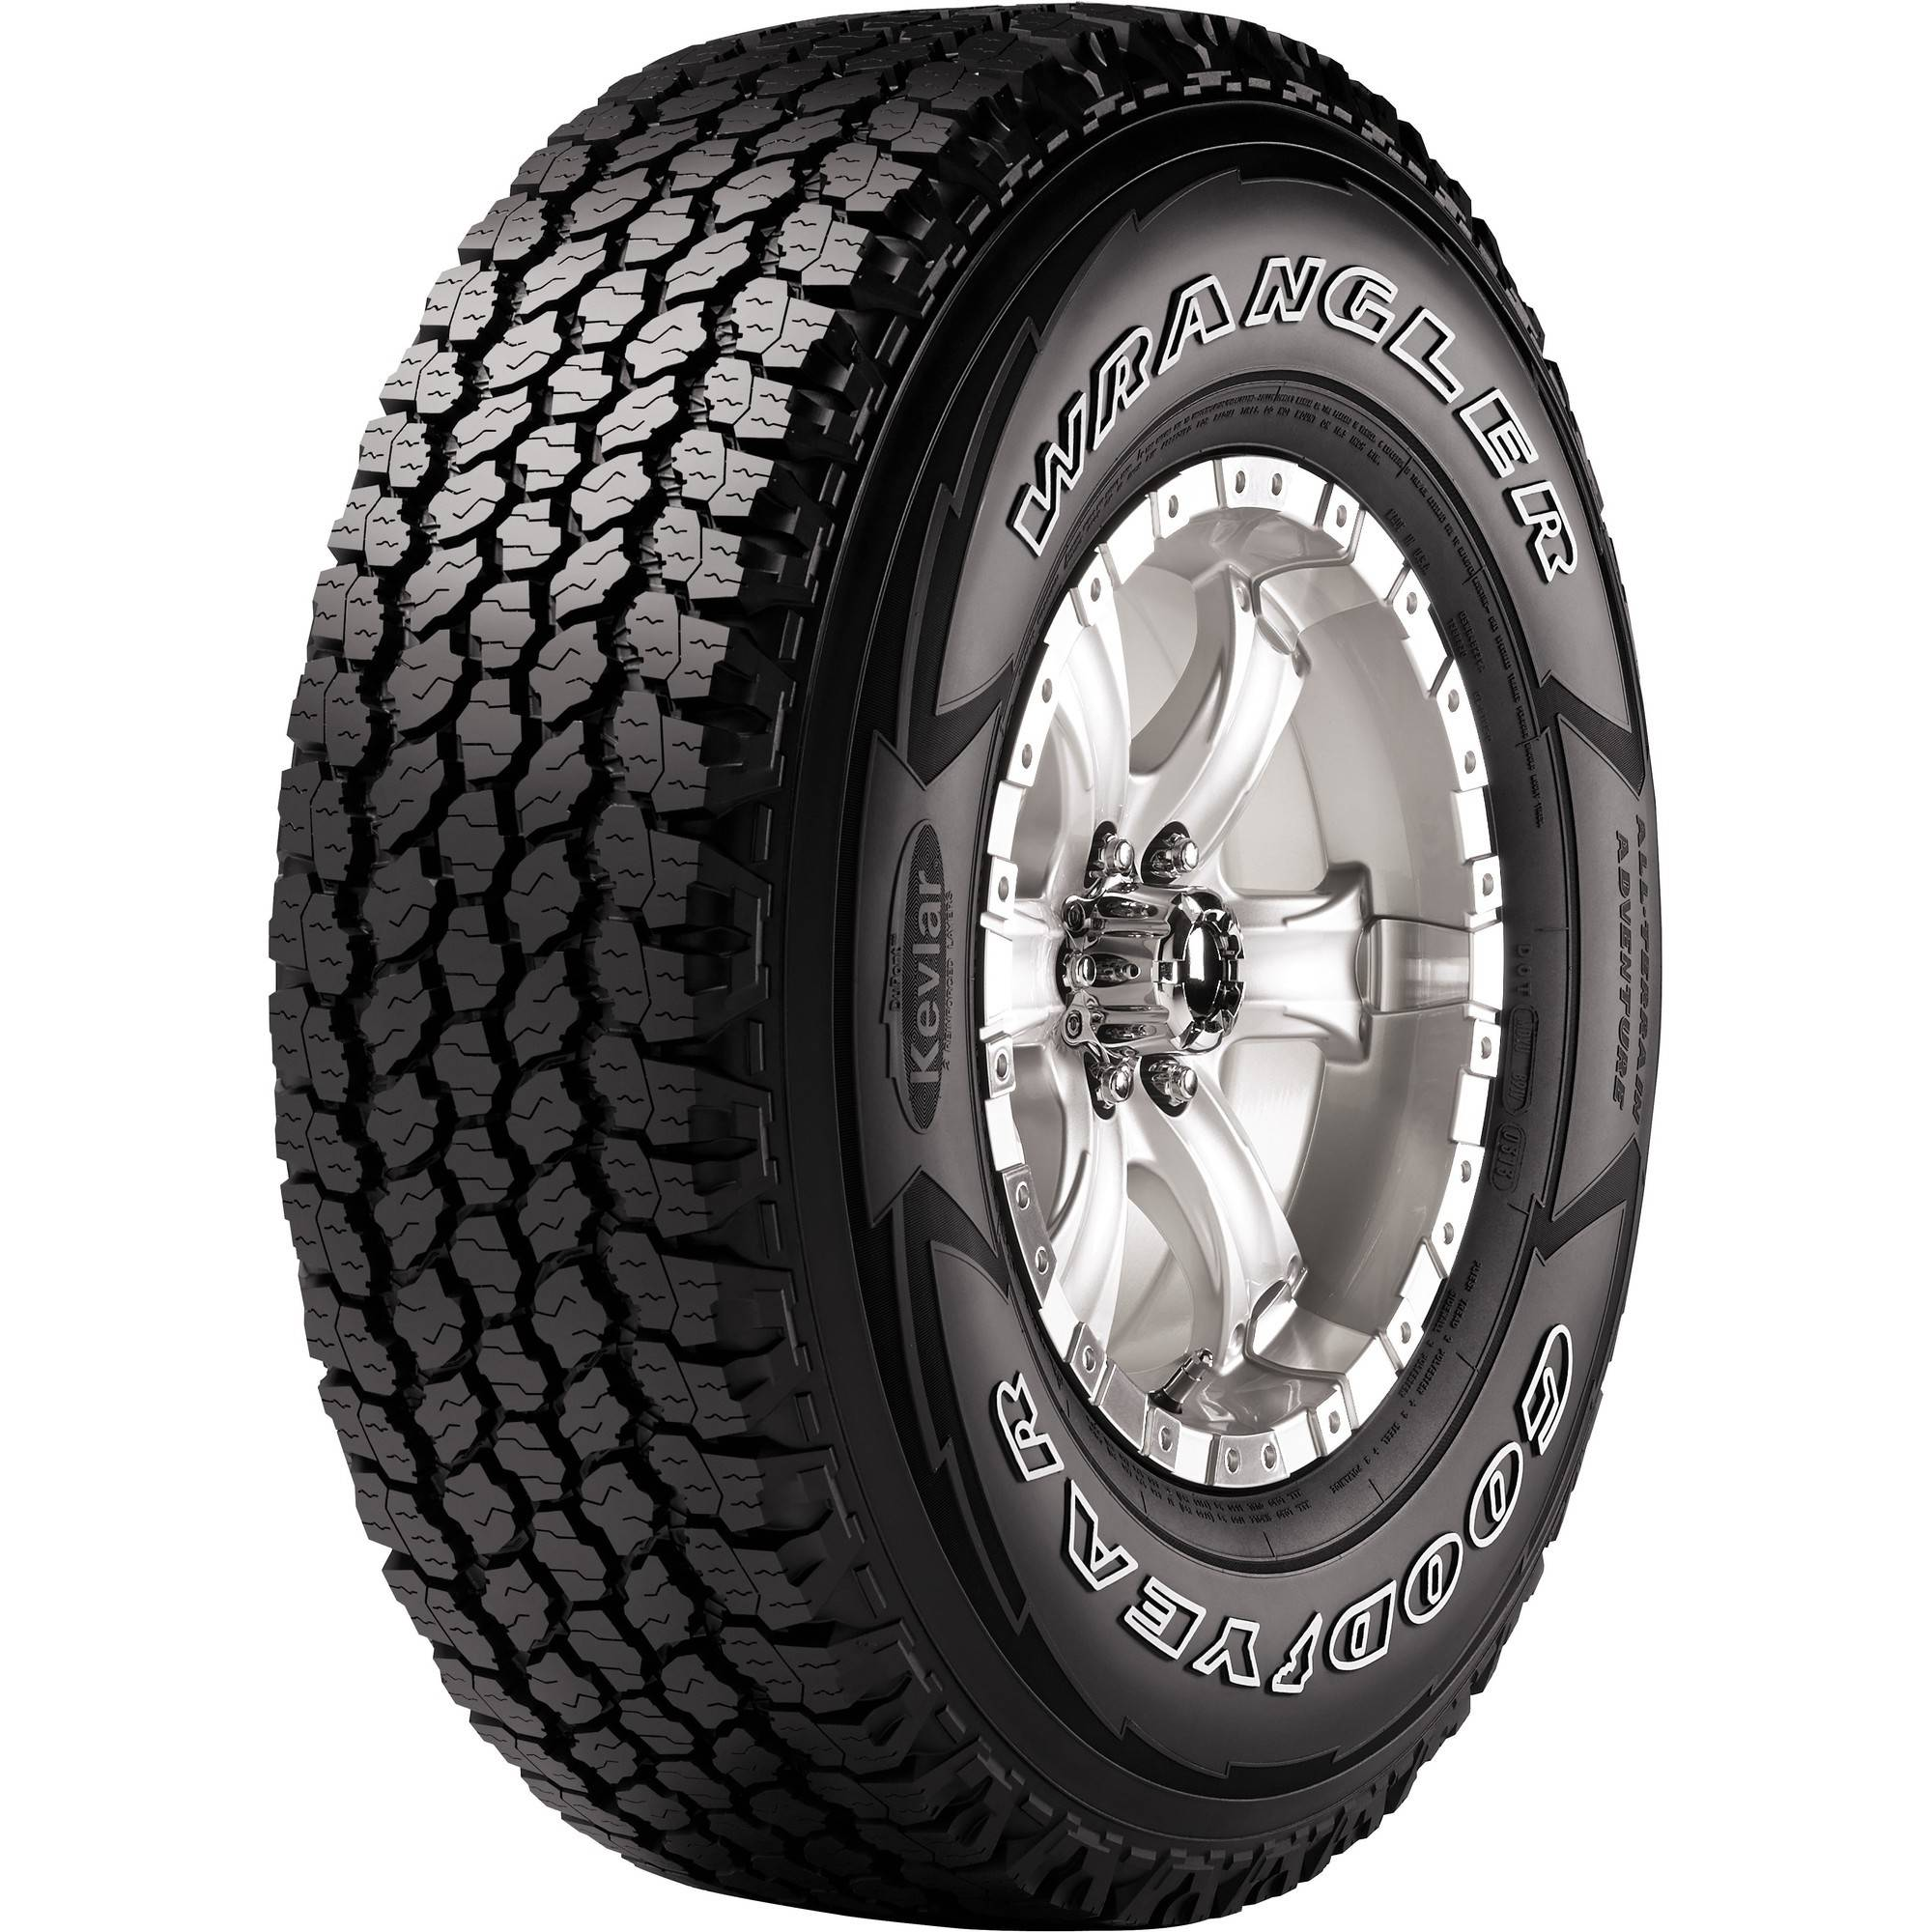 Goodyear Wrangler All-Terrain Adventure 265/75R16/SL Tire 116T